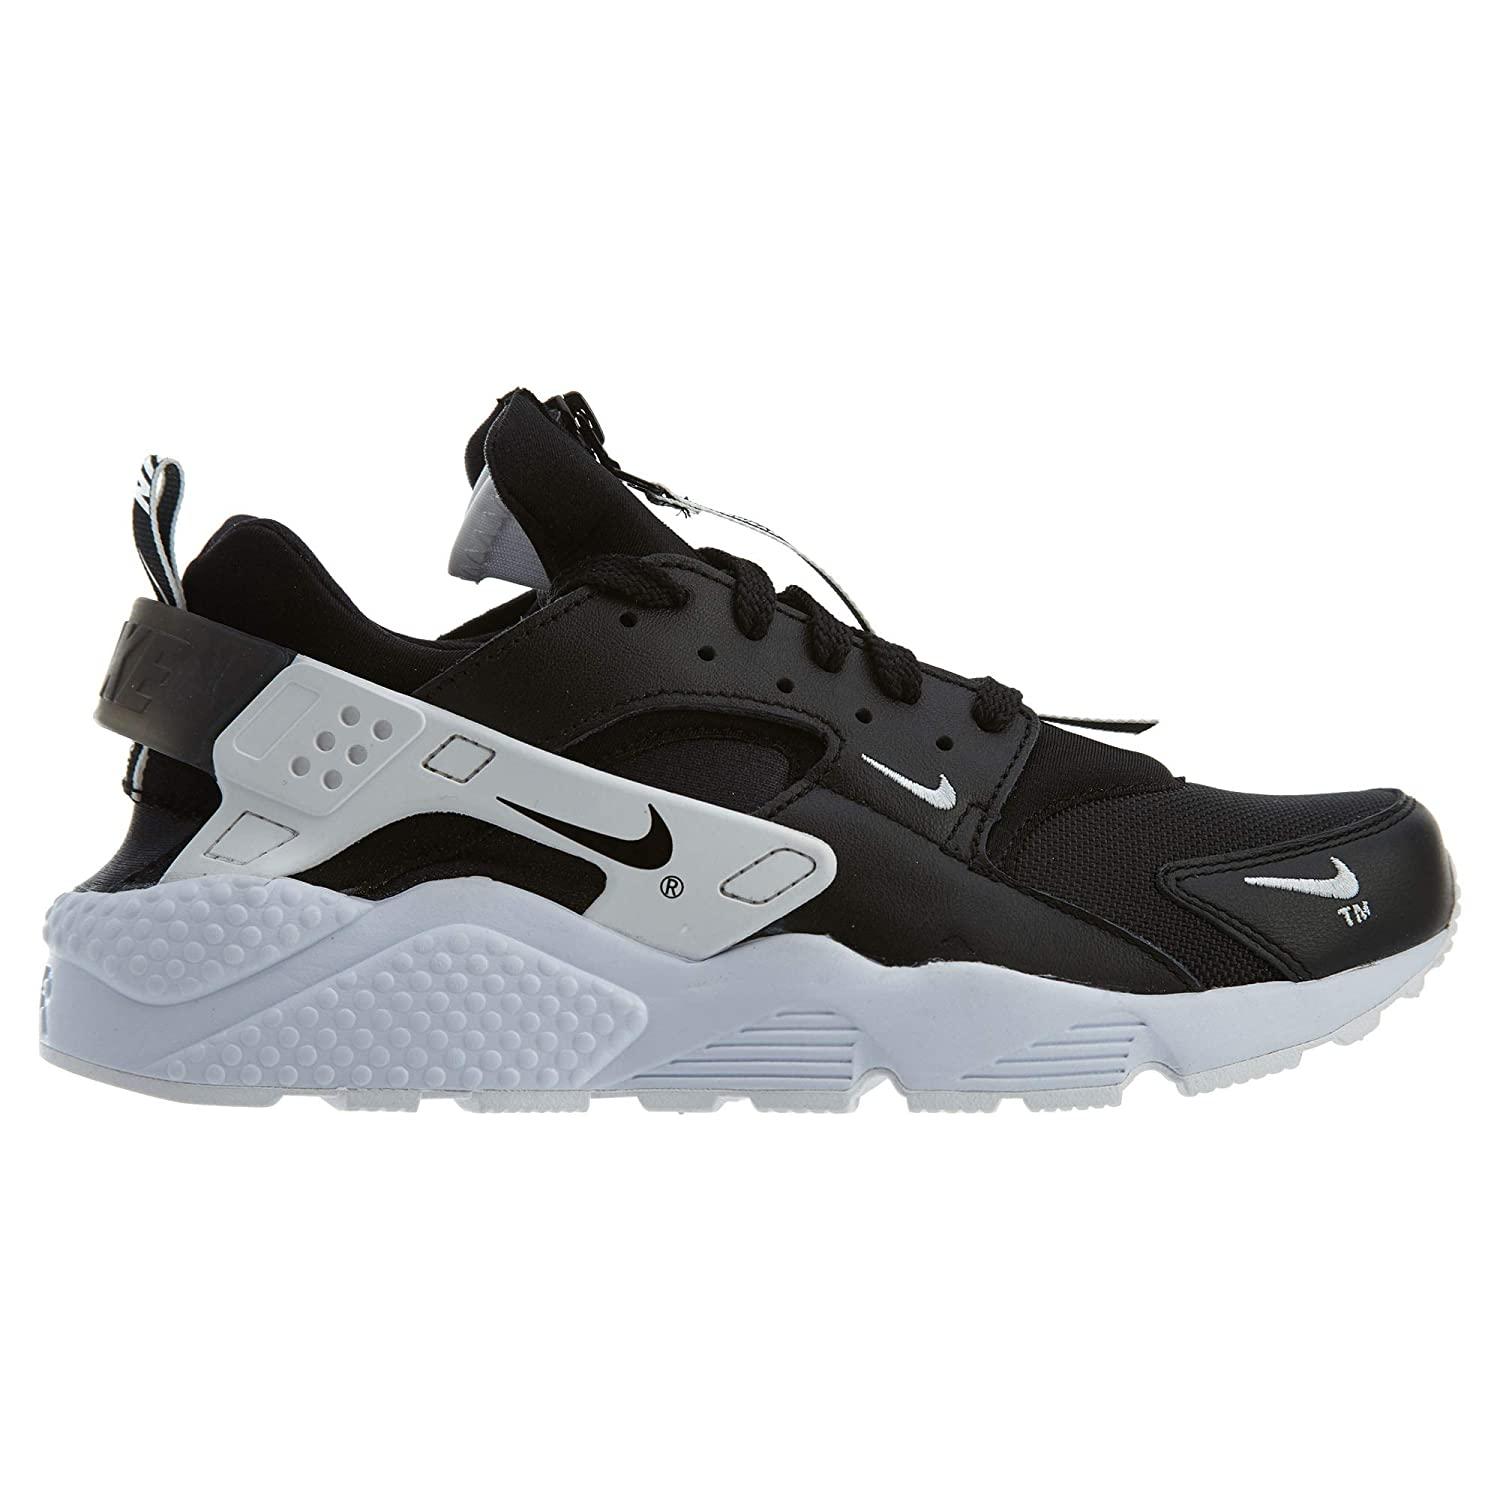 16d3645b8 Amazon.com | Nike Air Huarache Run PRM Zip Mens Bq6164-001 Size 14  Black/Black-White | Road Running